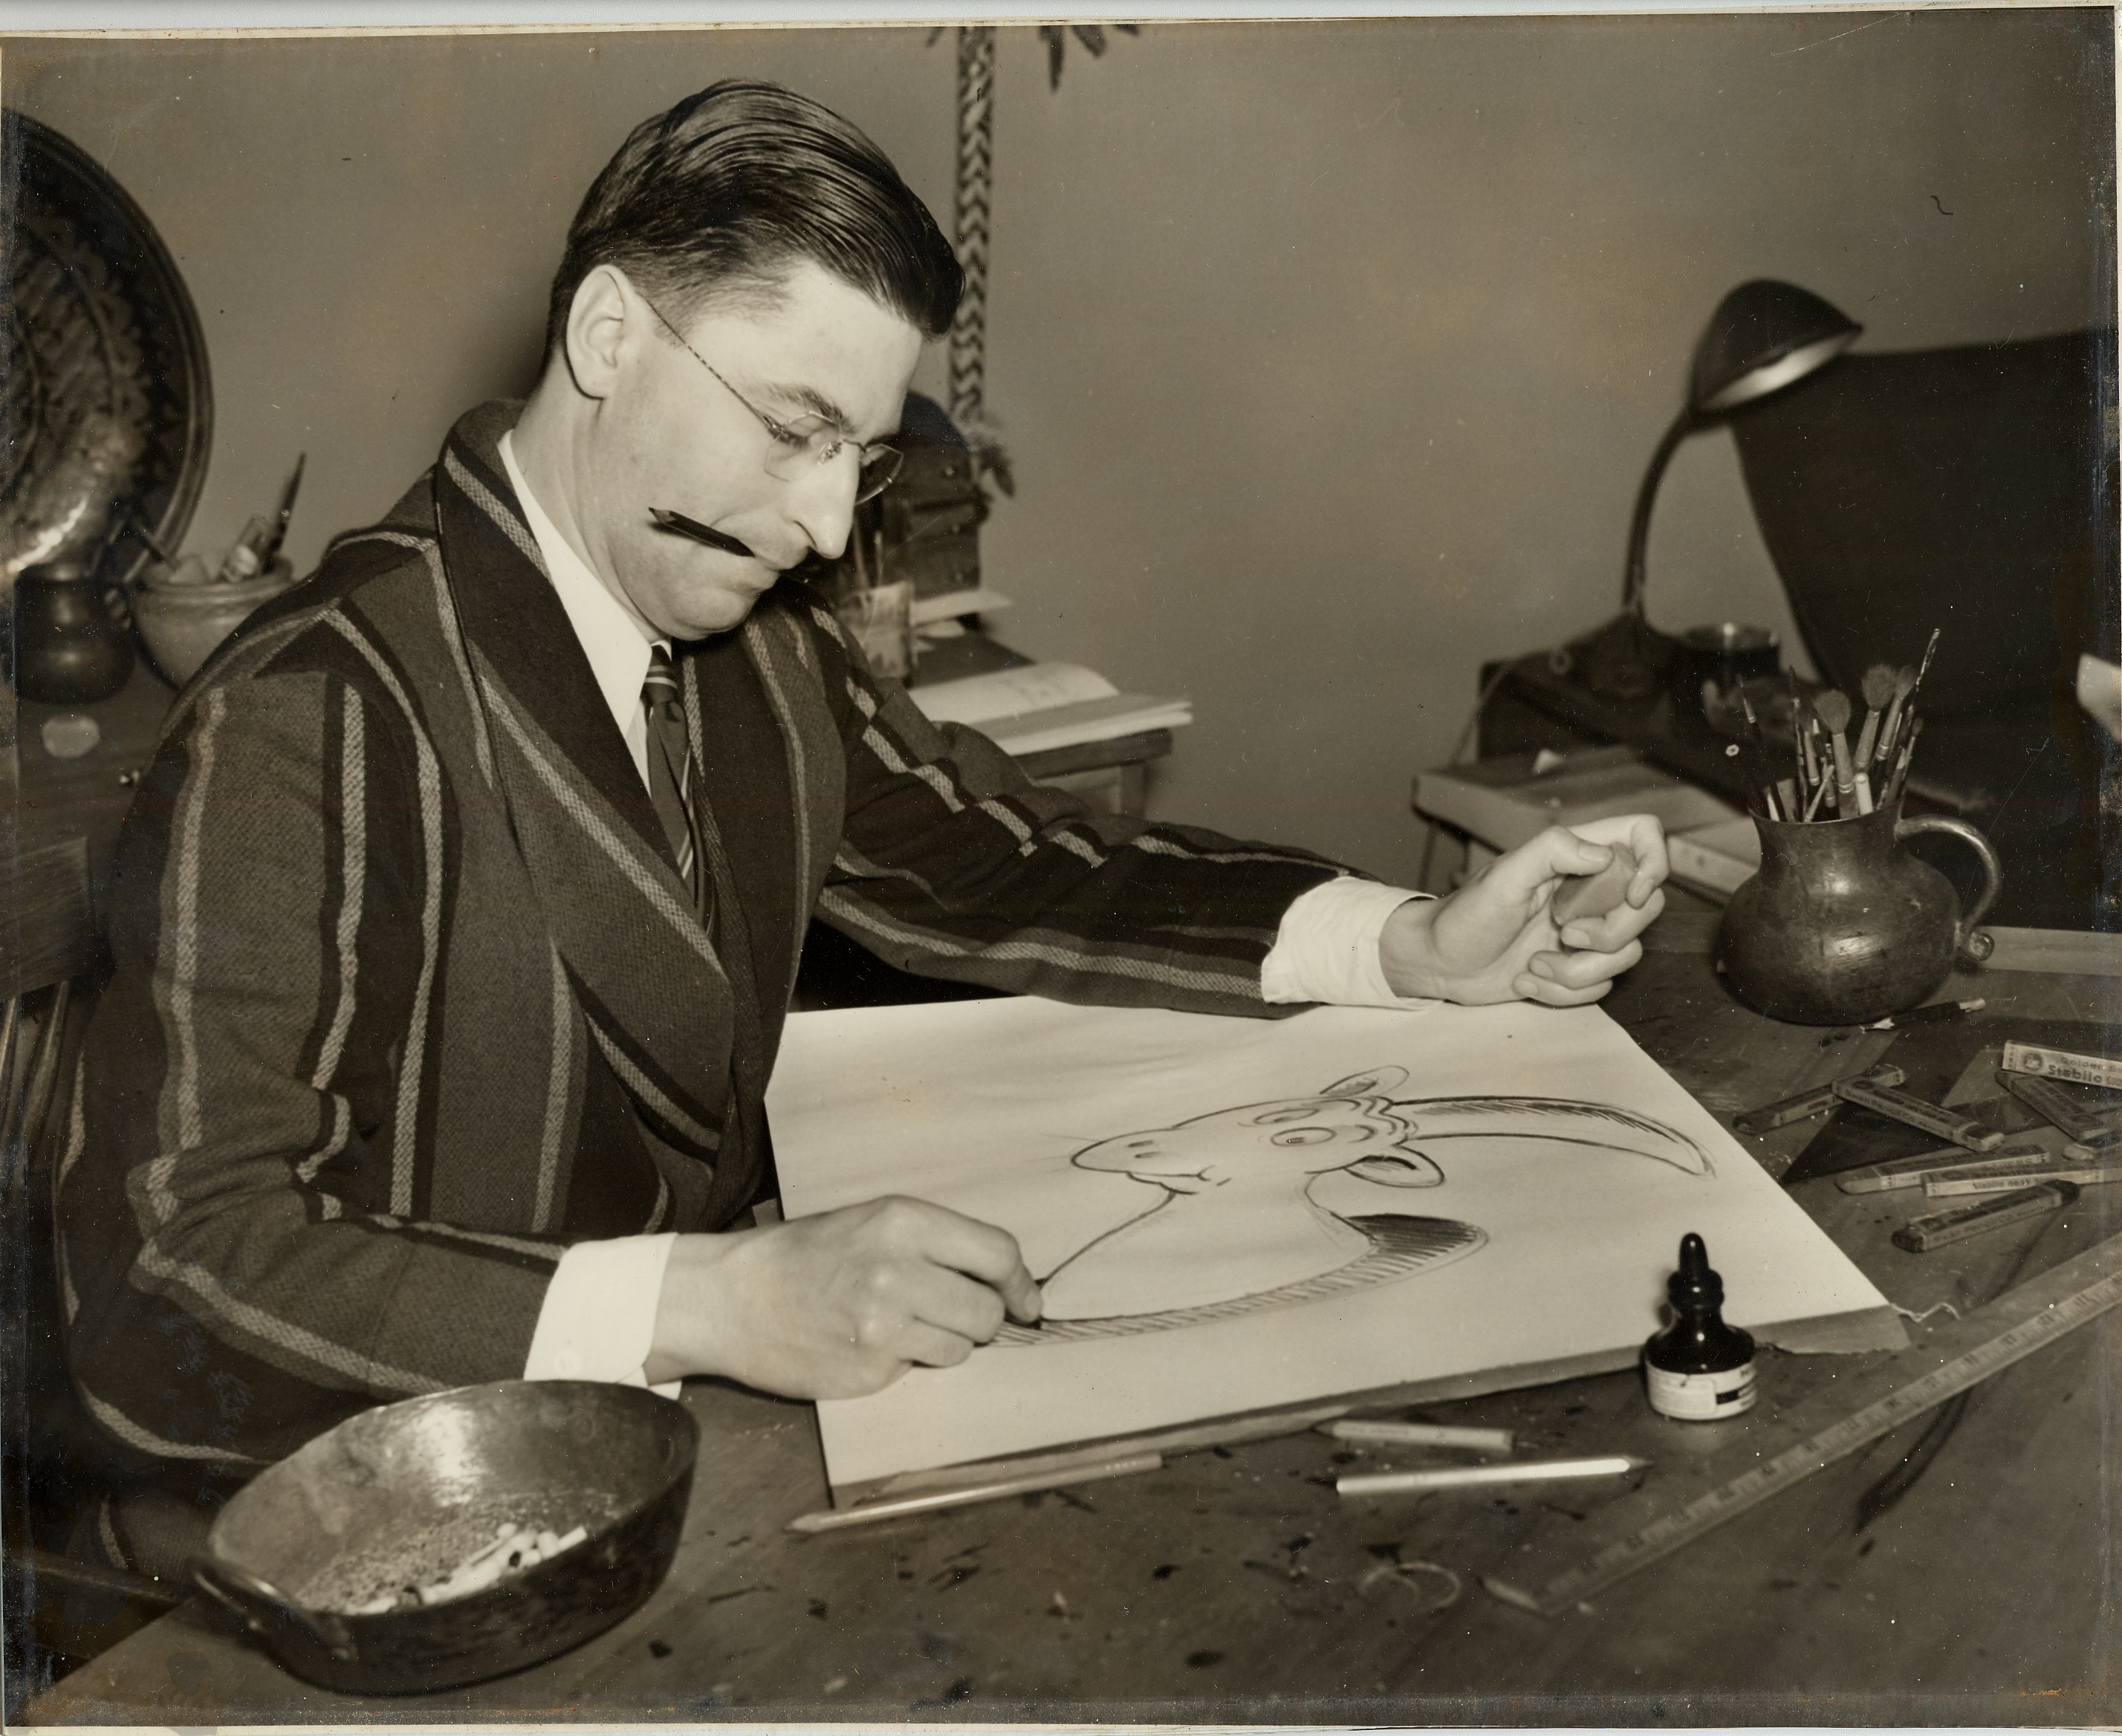 theodore seuss Dr seuss was born theodor seuss geisel in springfield, massachusetts, on  march 2, 1904 after graduating from dartmouth college in 1925, he went to  oxford.